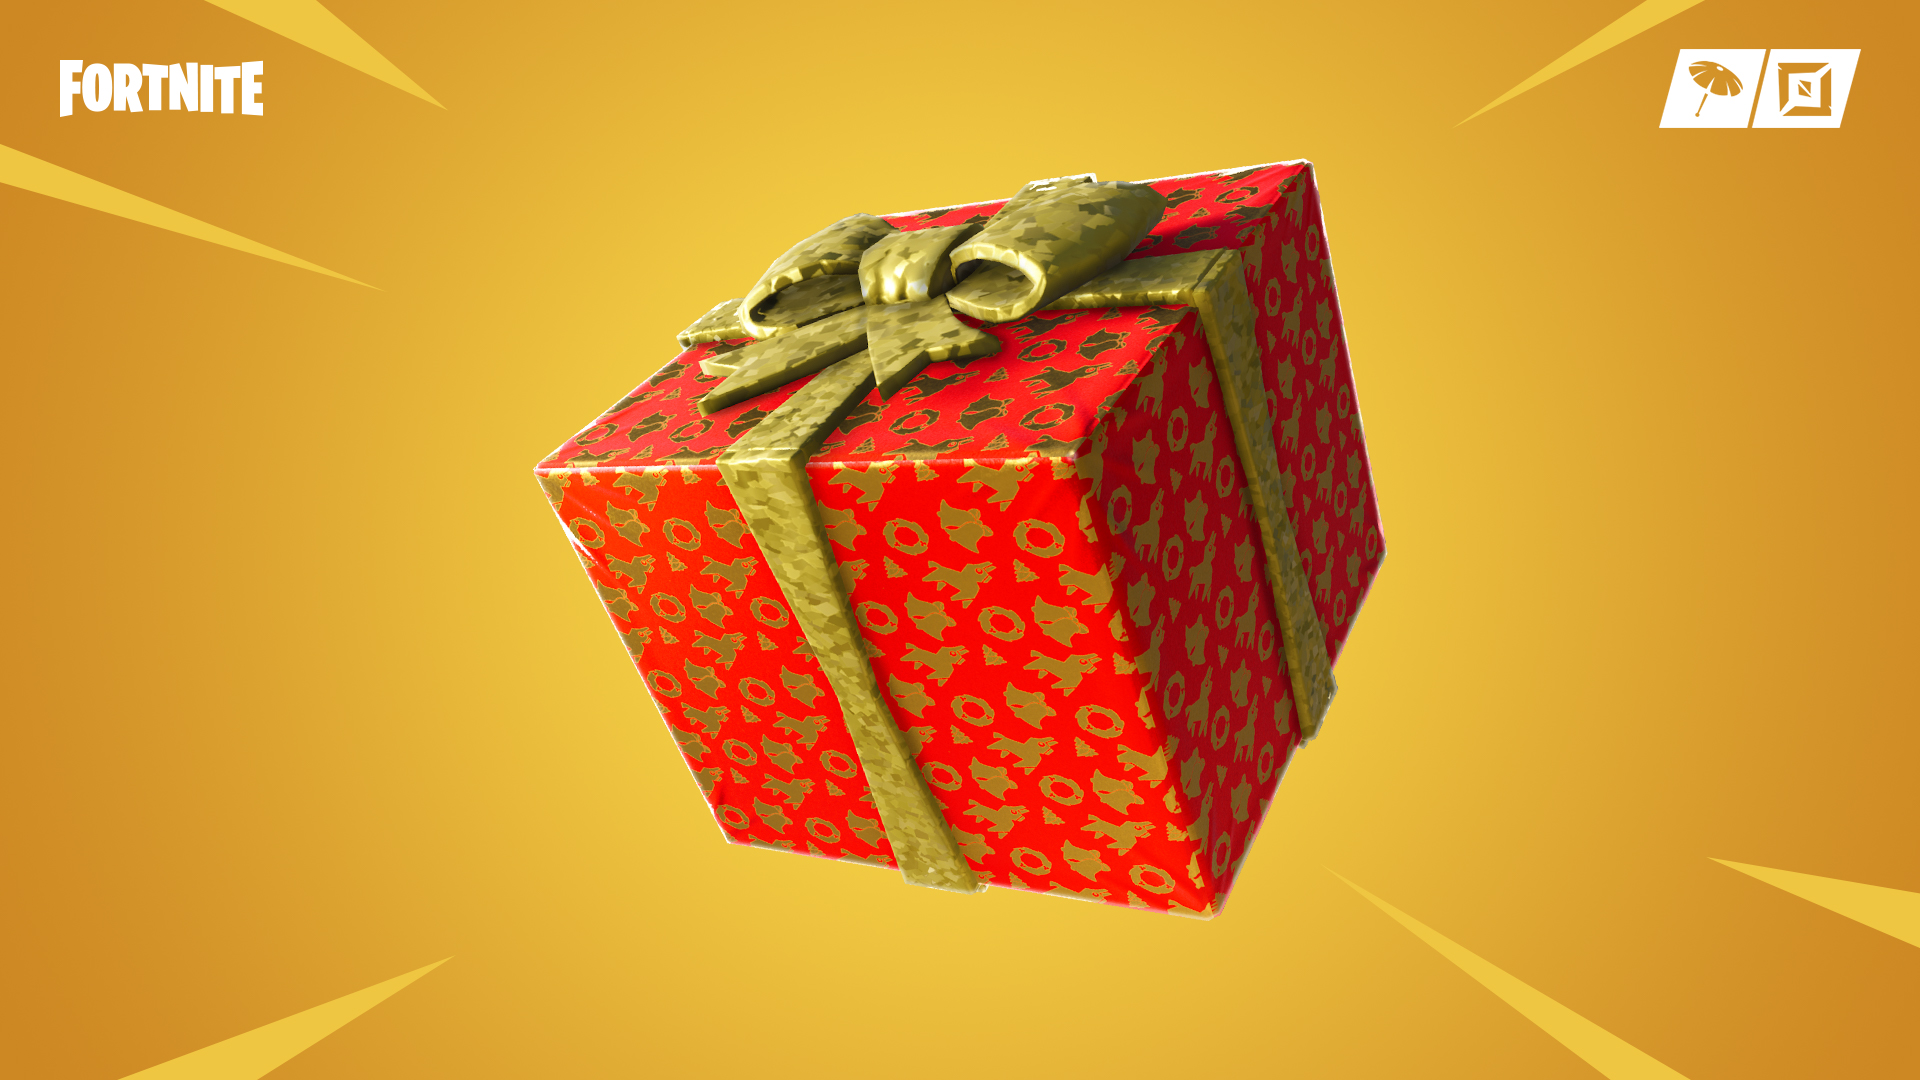 presents added to fortnite battle royale in v7 10 s first content update - fortnite gift box png